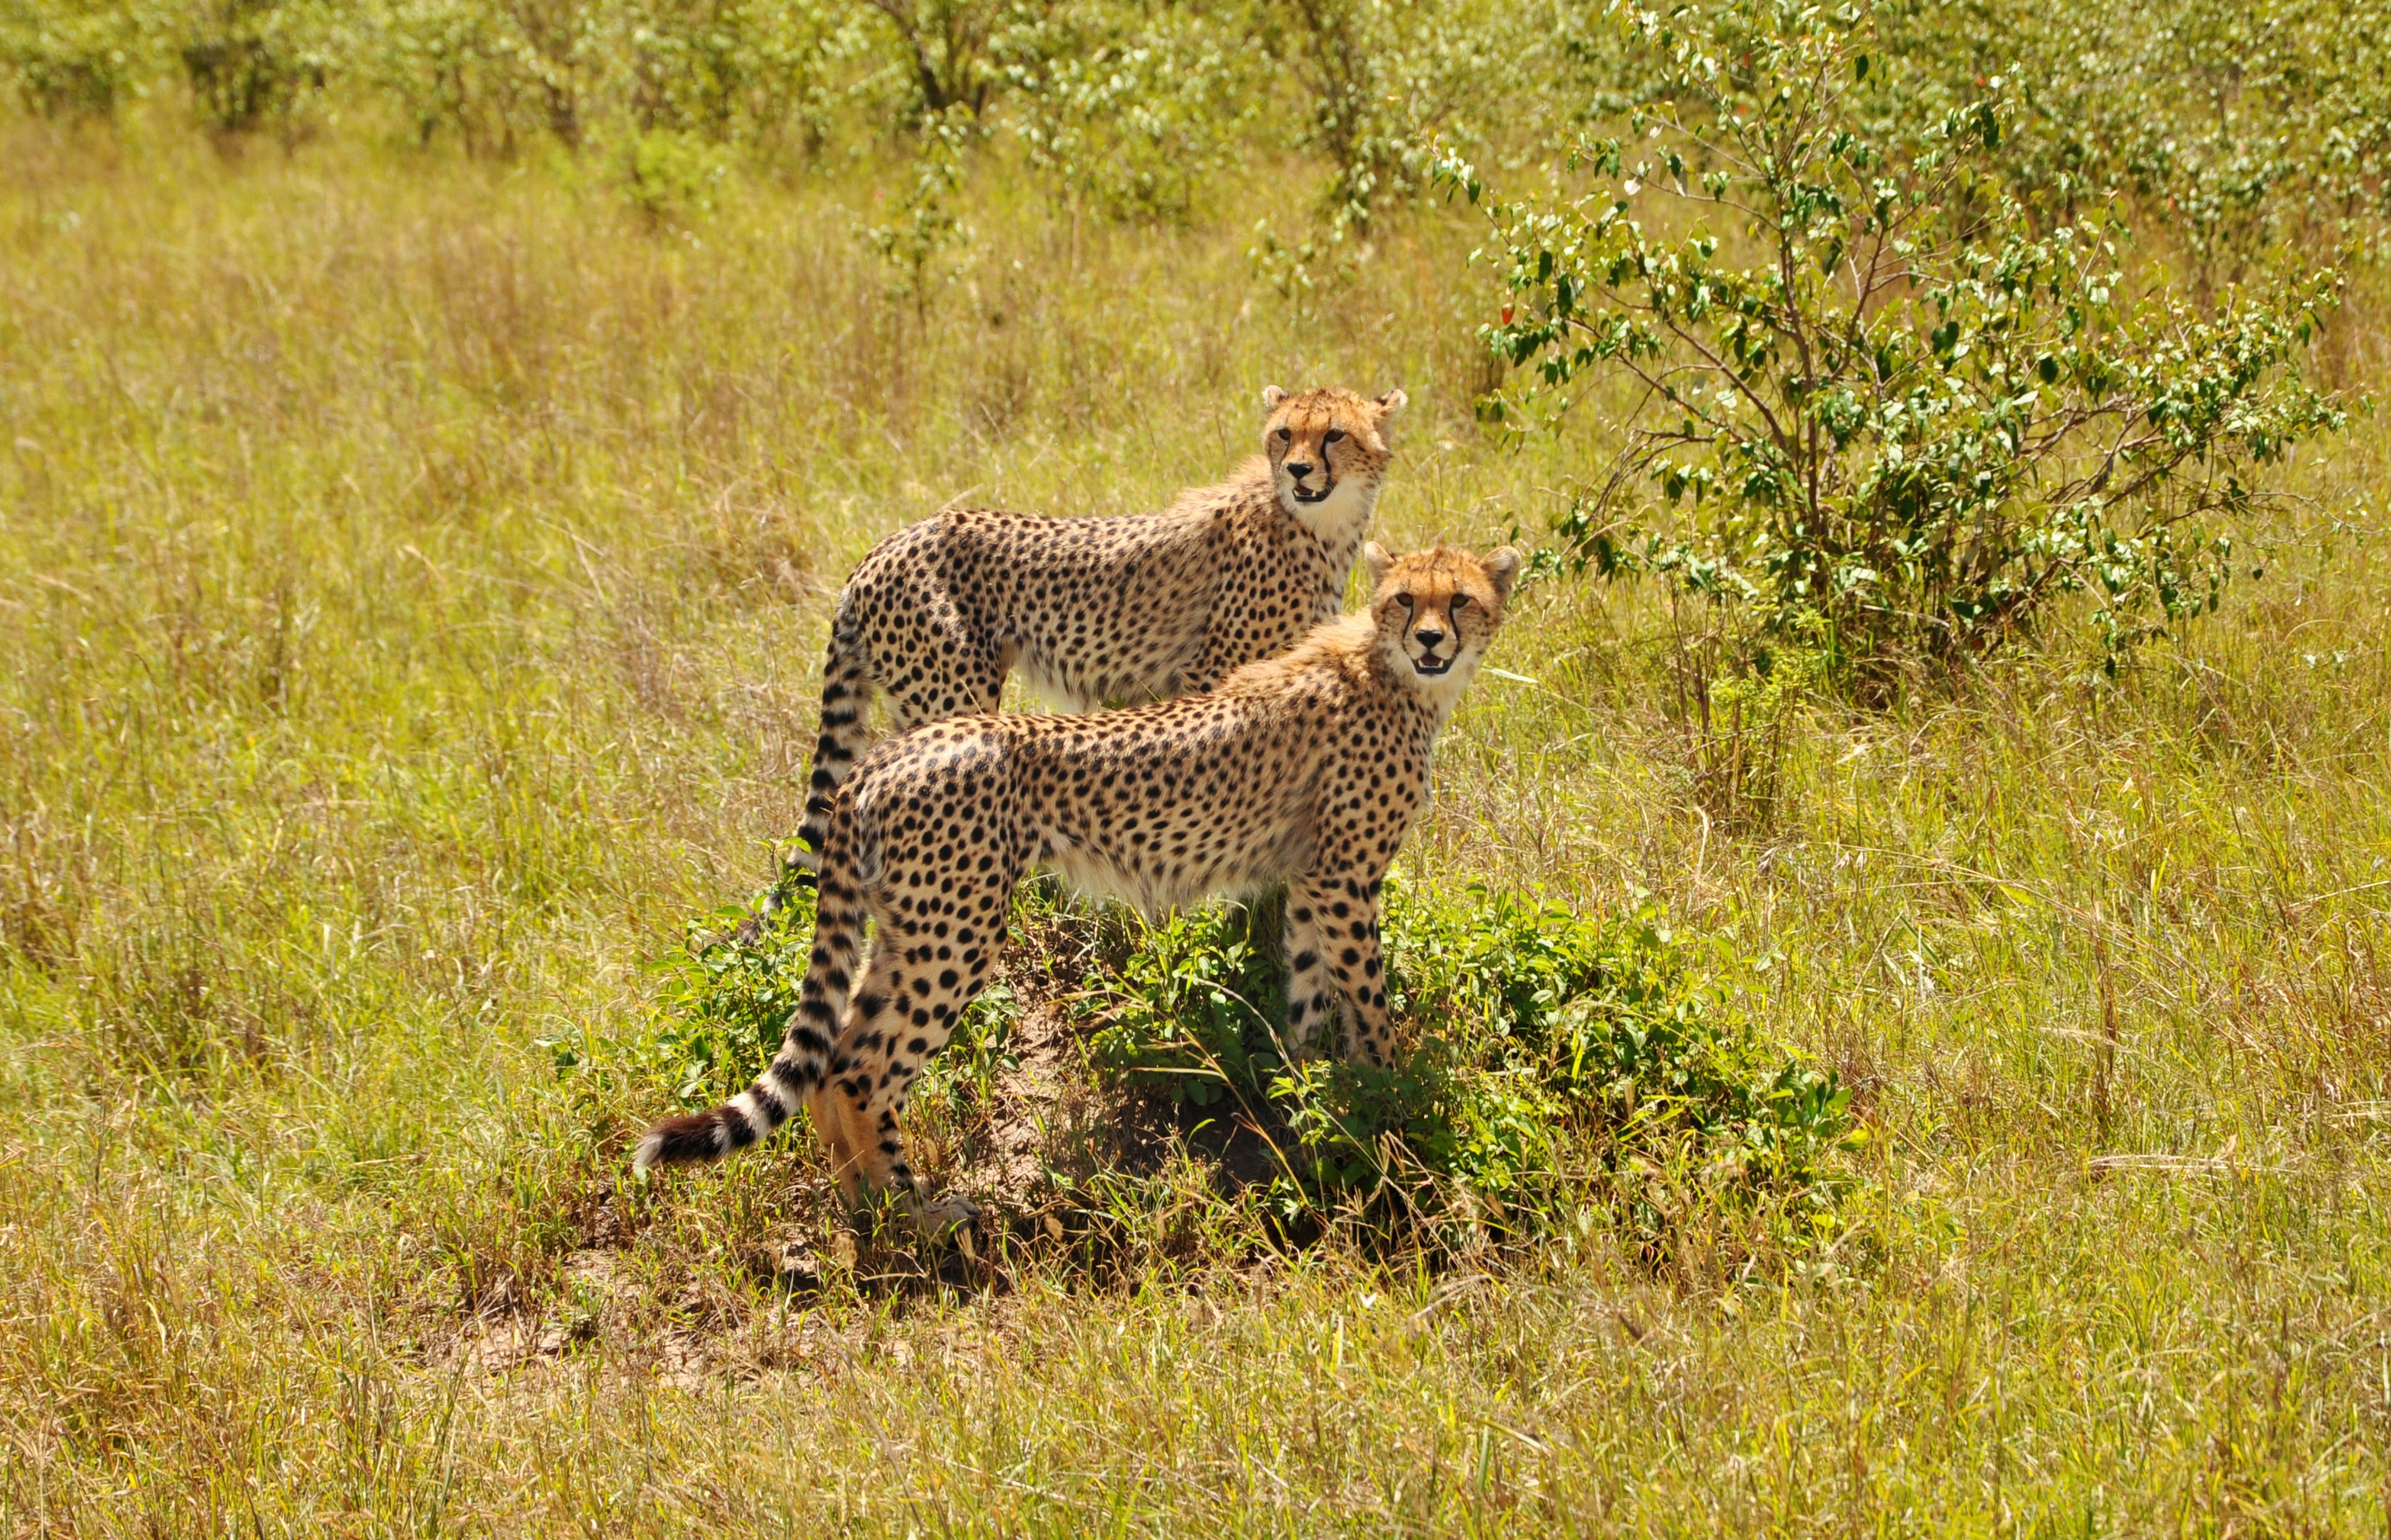 wildlife photography of two cheetahs